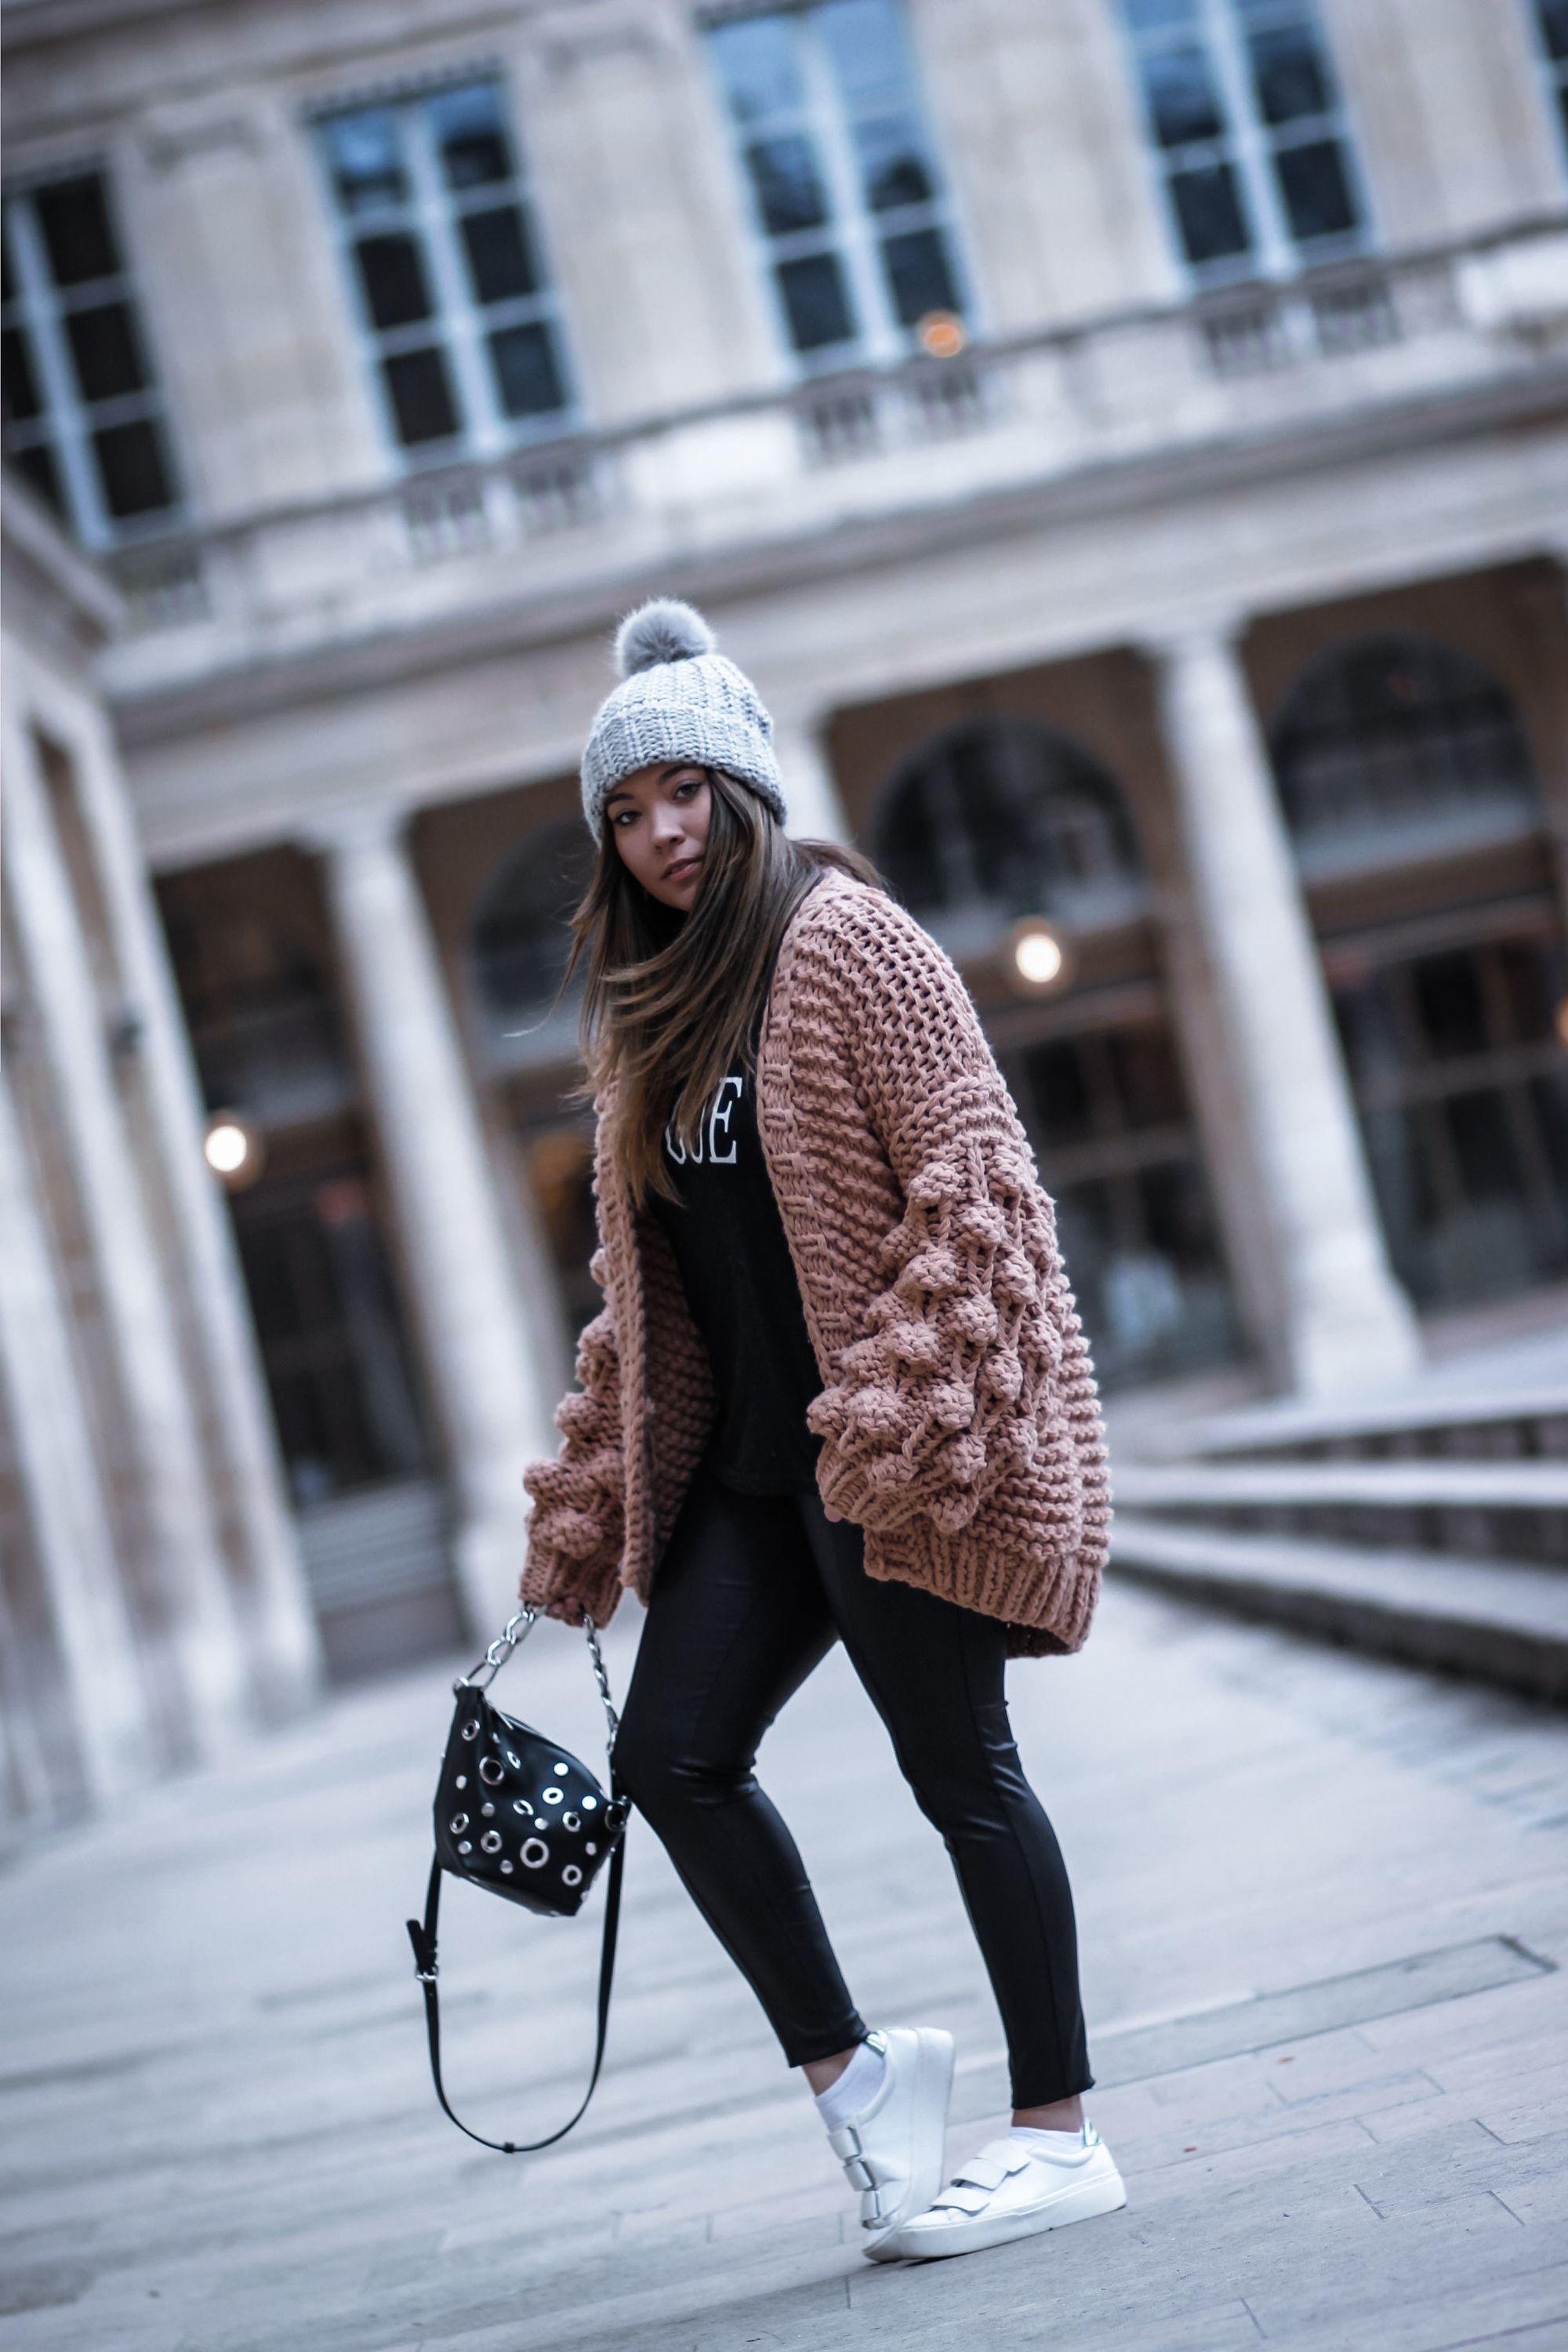 blogueuse mode, the green ananas, blog mode, blog, mango,pantalon simili cuir, gilet grosse maille, gilet manches bouffantes, pinterest, mumshandmade, zara, sac oeillet, le it gilet, tendance grosse maille